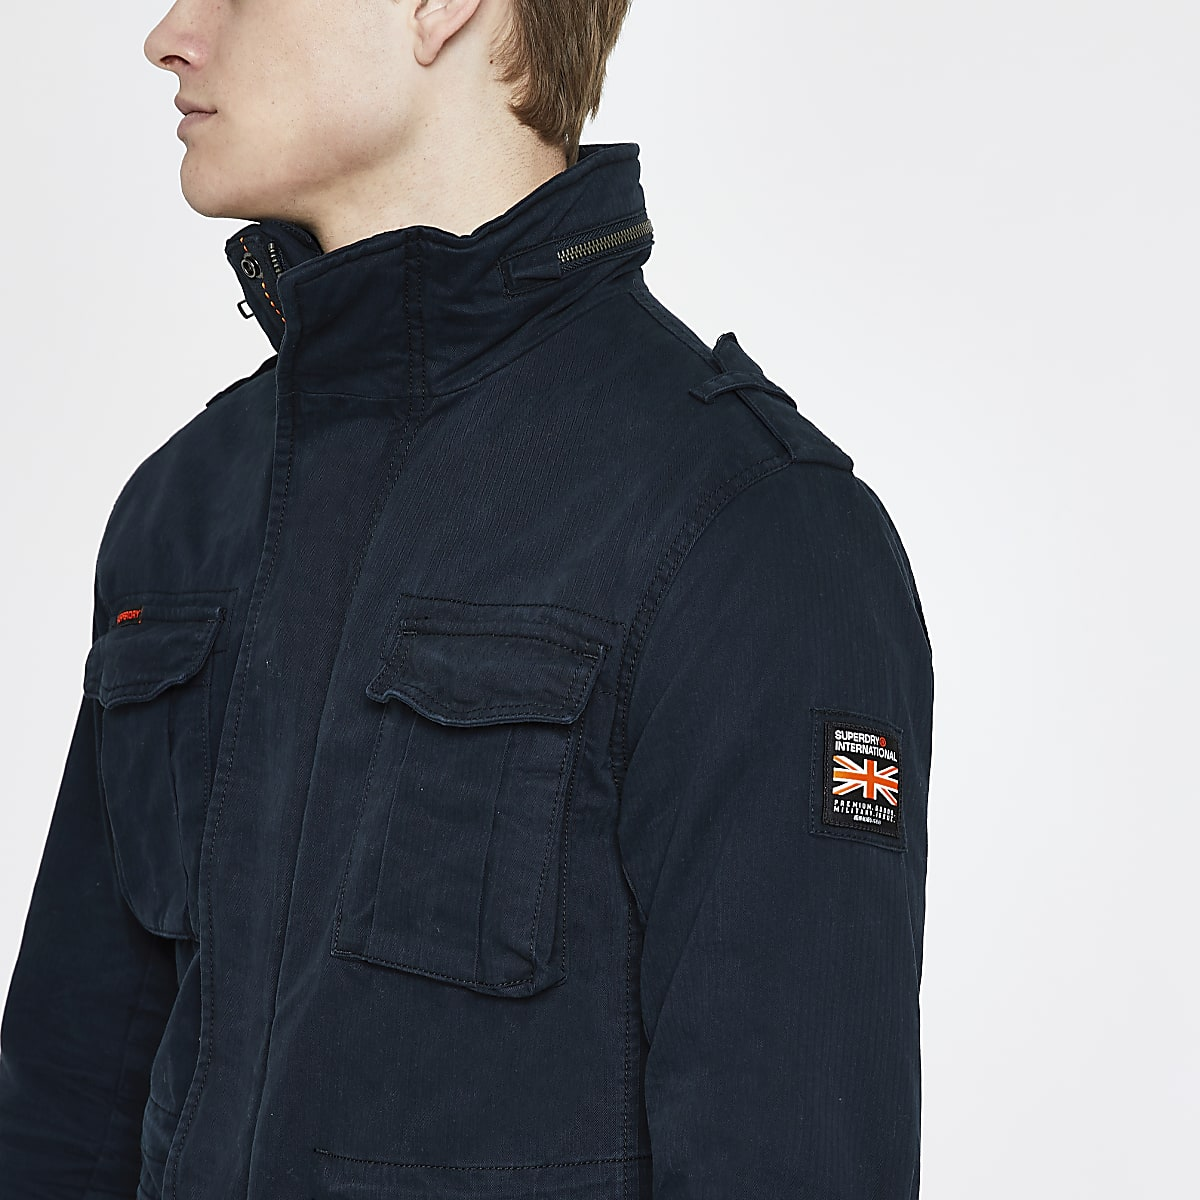 Superdry navy classic four pocket jacket